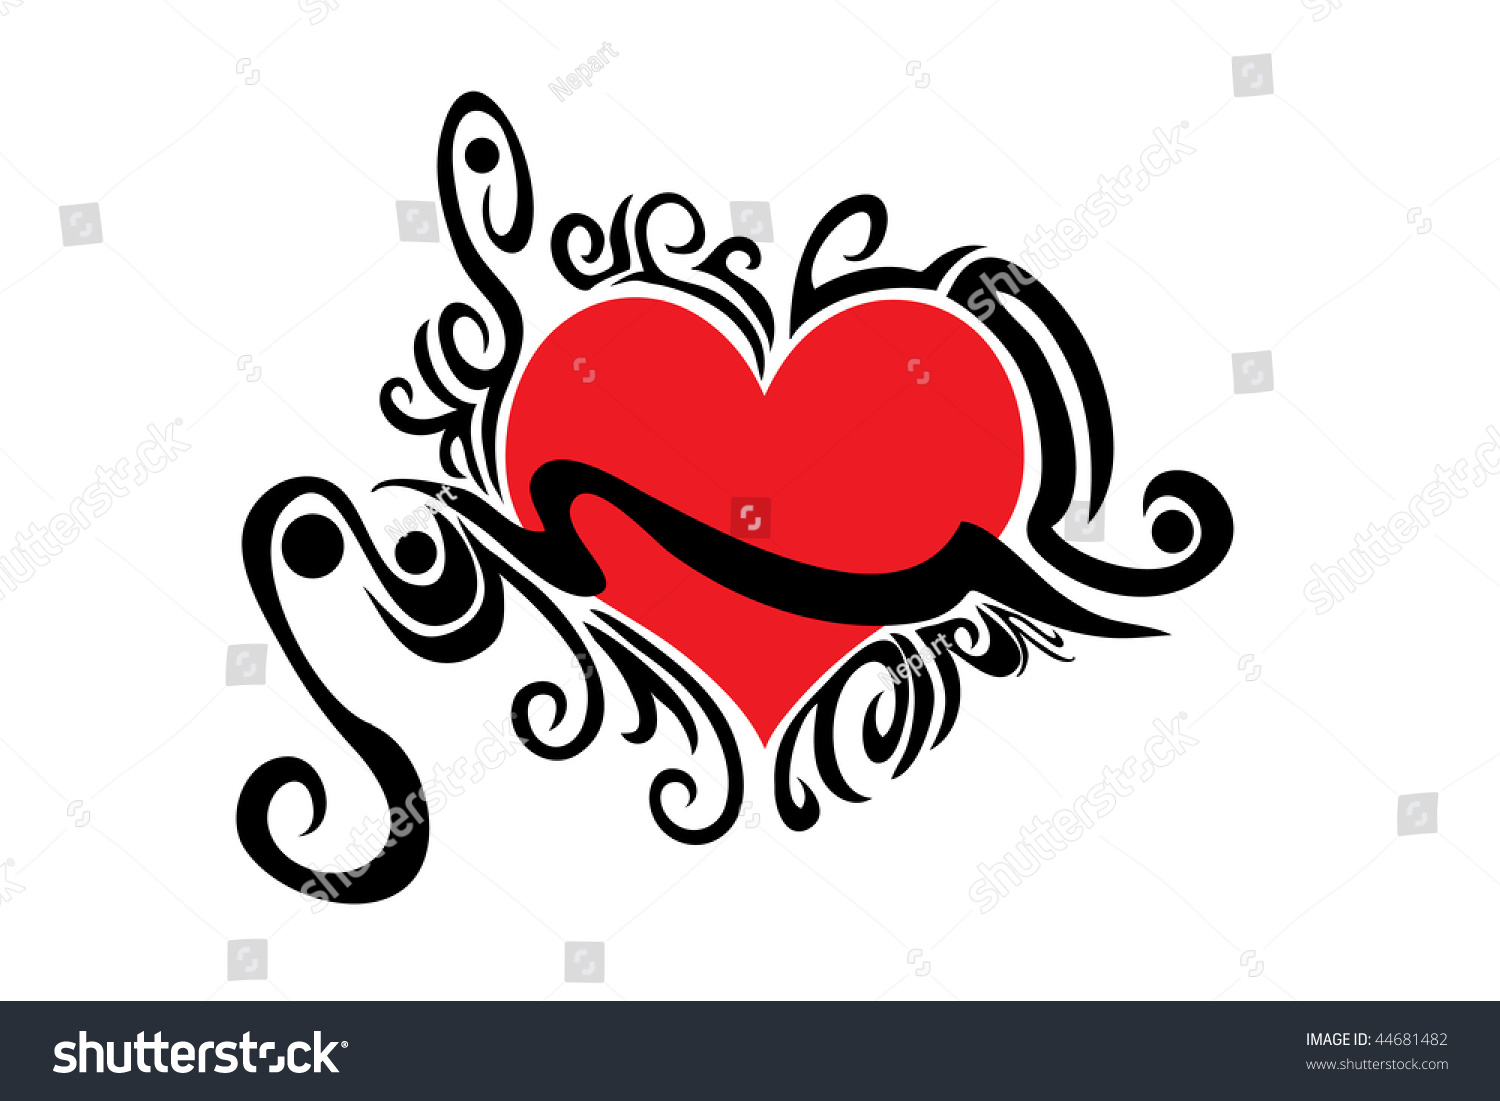 Heart Gender Vectors Photos and PSD files  Free Download